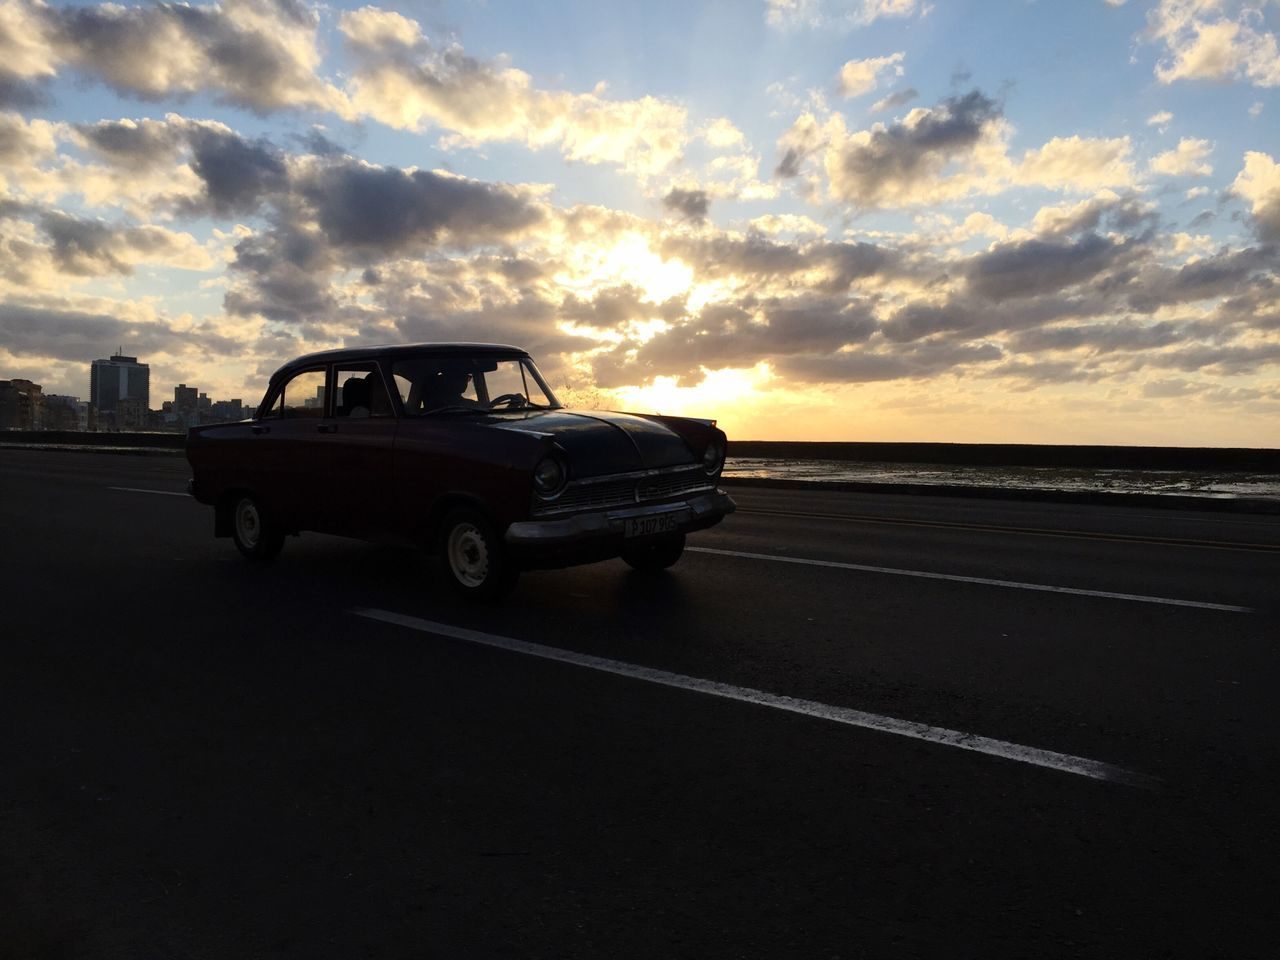 Sunset Sad & Lonely Car Sky Sunlight Transportation Land Vehicle Cloud - Sky Beauty In Nature Nature Sunbeam No People Outdoors Day Final Goodbye Stream Vintage IPhone EyeEmNewHere